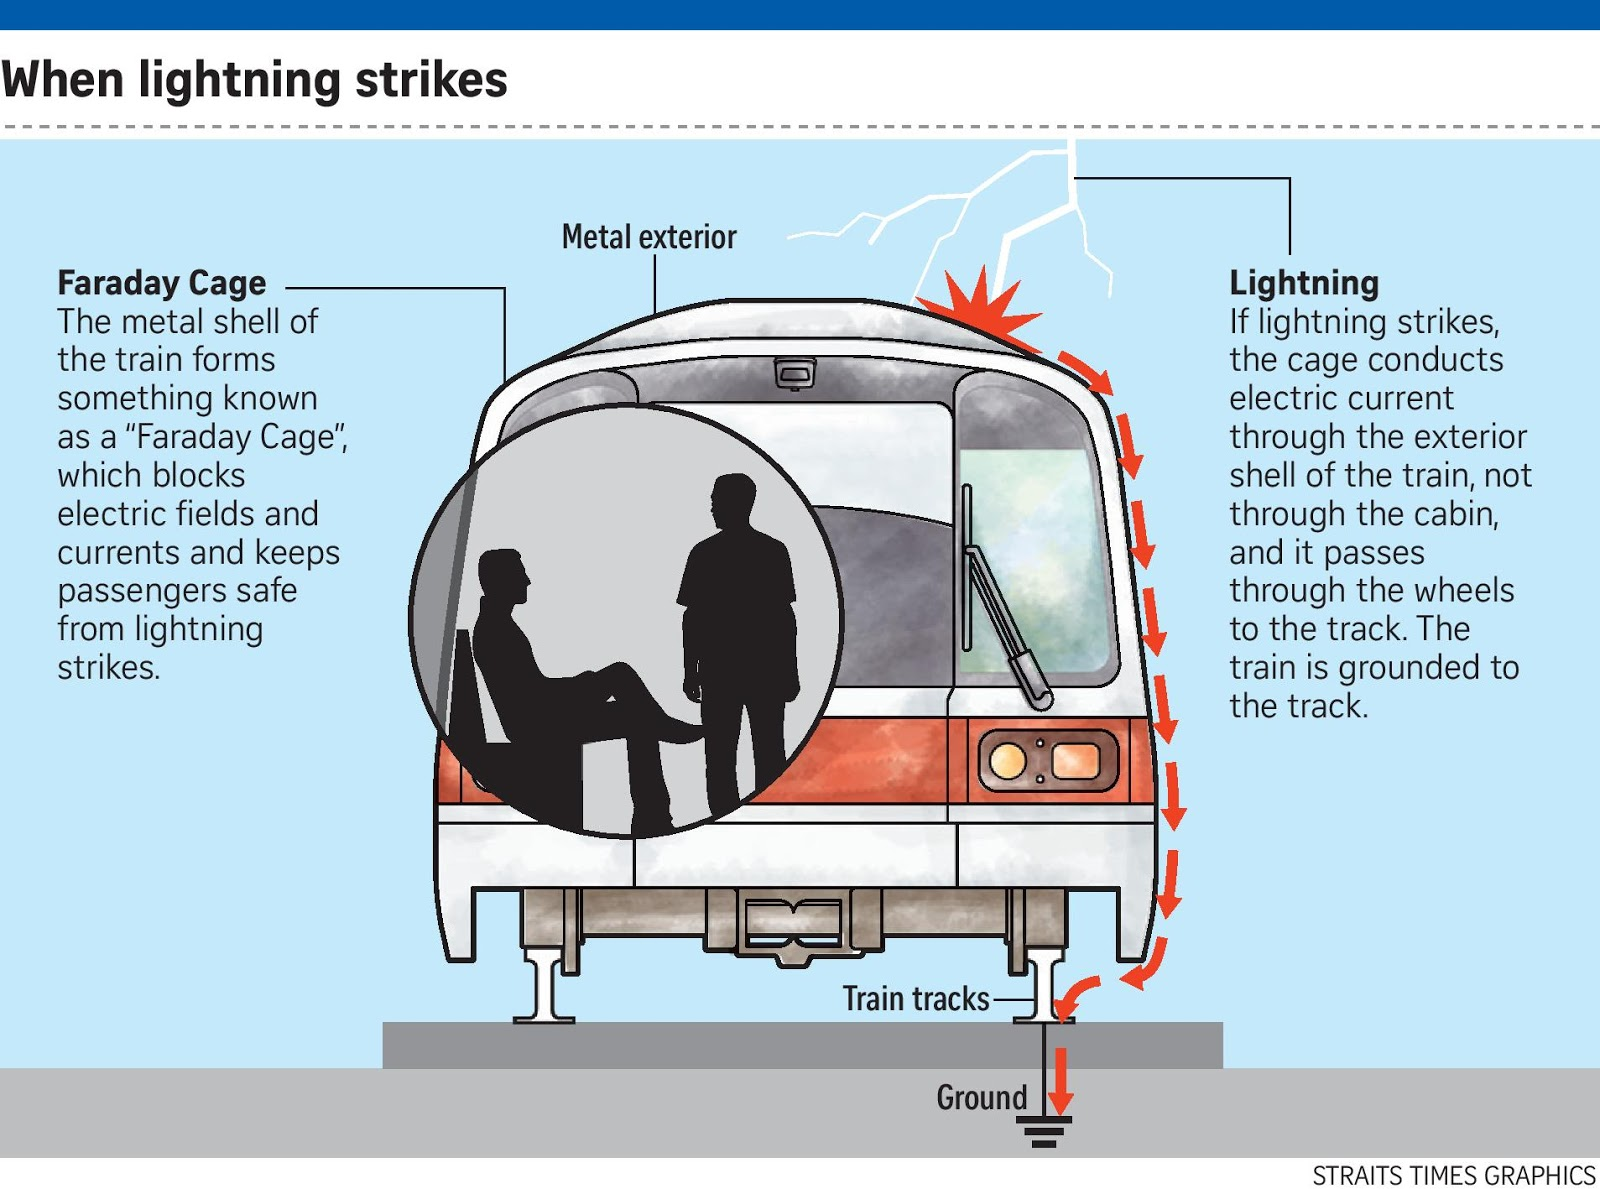 It is safe for passengers to travel in trains during a lightning storm as trains are protected by a Faraday Cage.